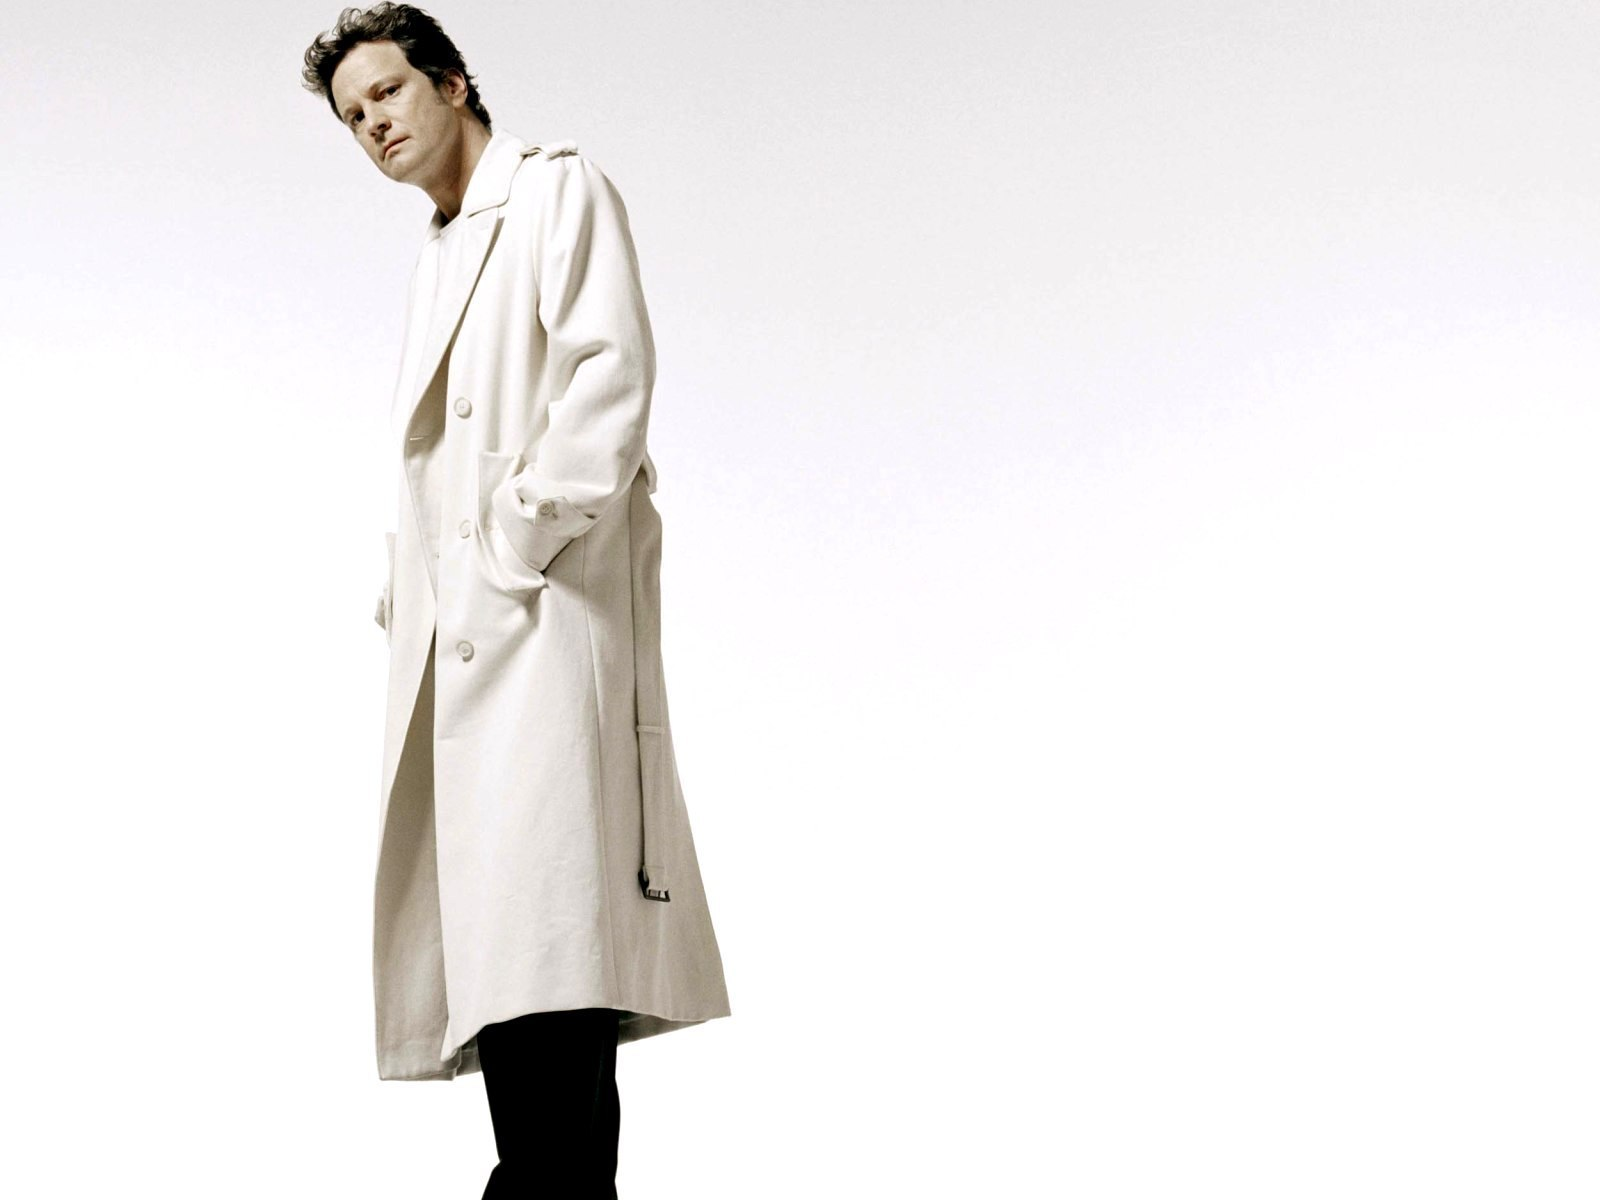 1600x1200 - Colin Firth Wallpapers 21